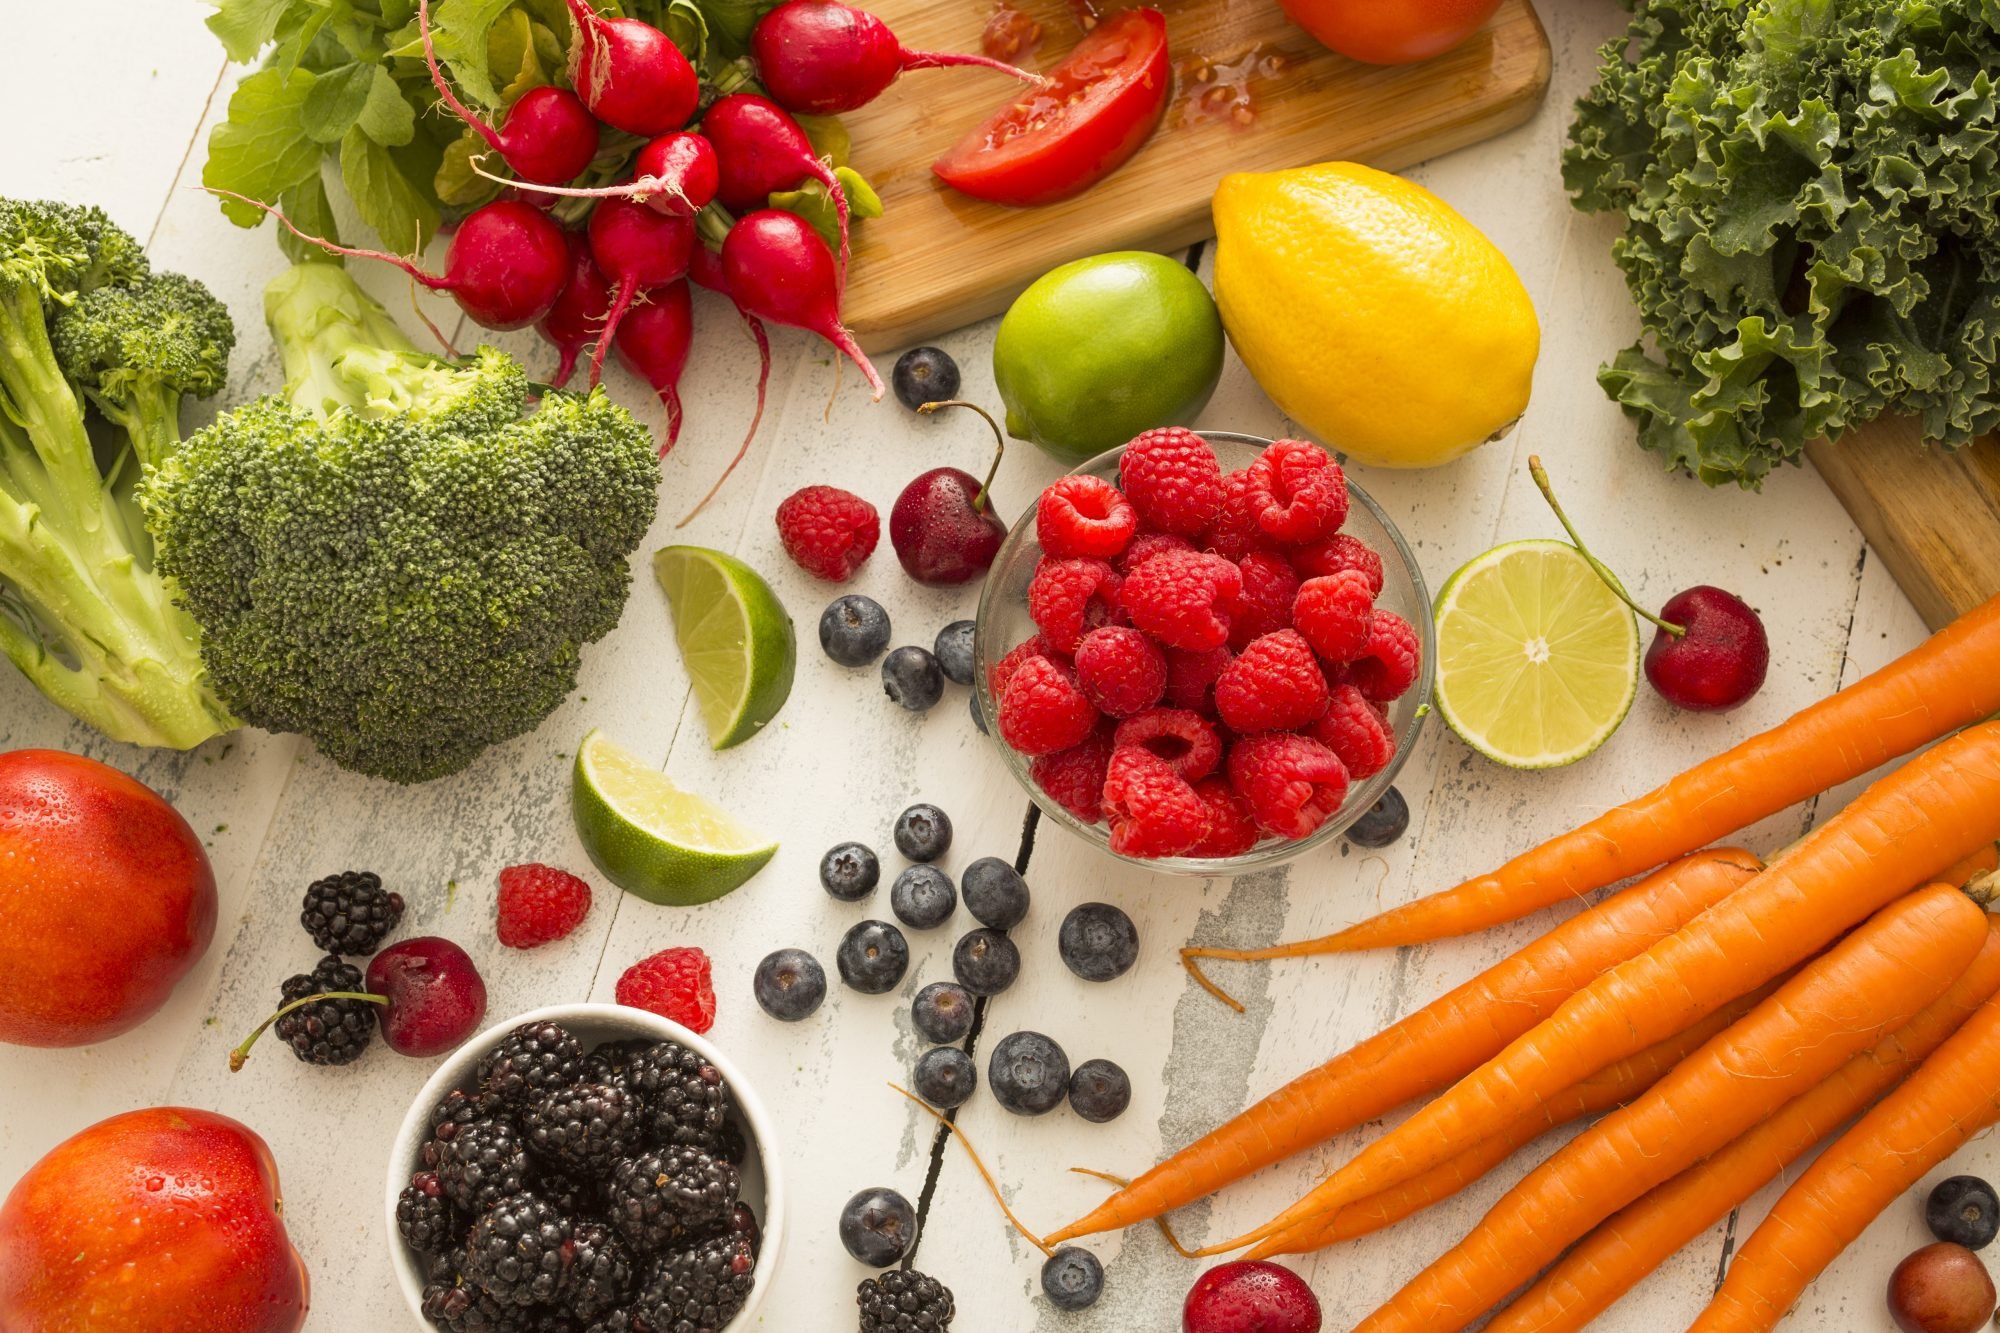 Healthy Fruits and Vegetables on Cutting Board